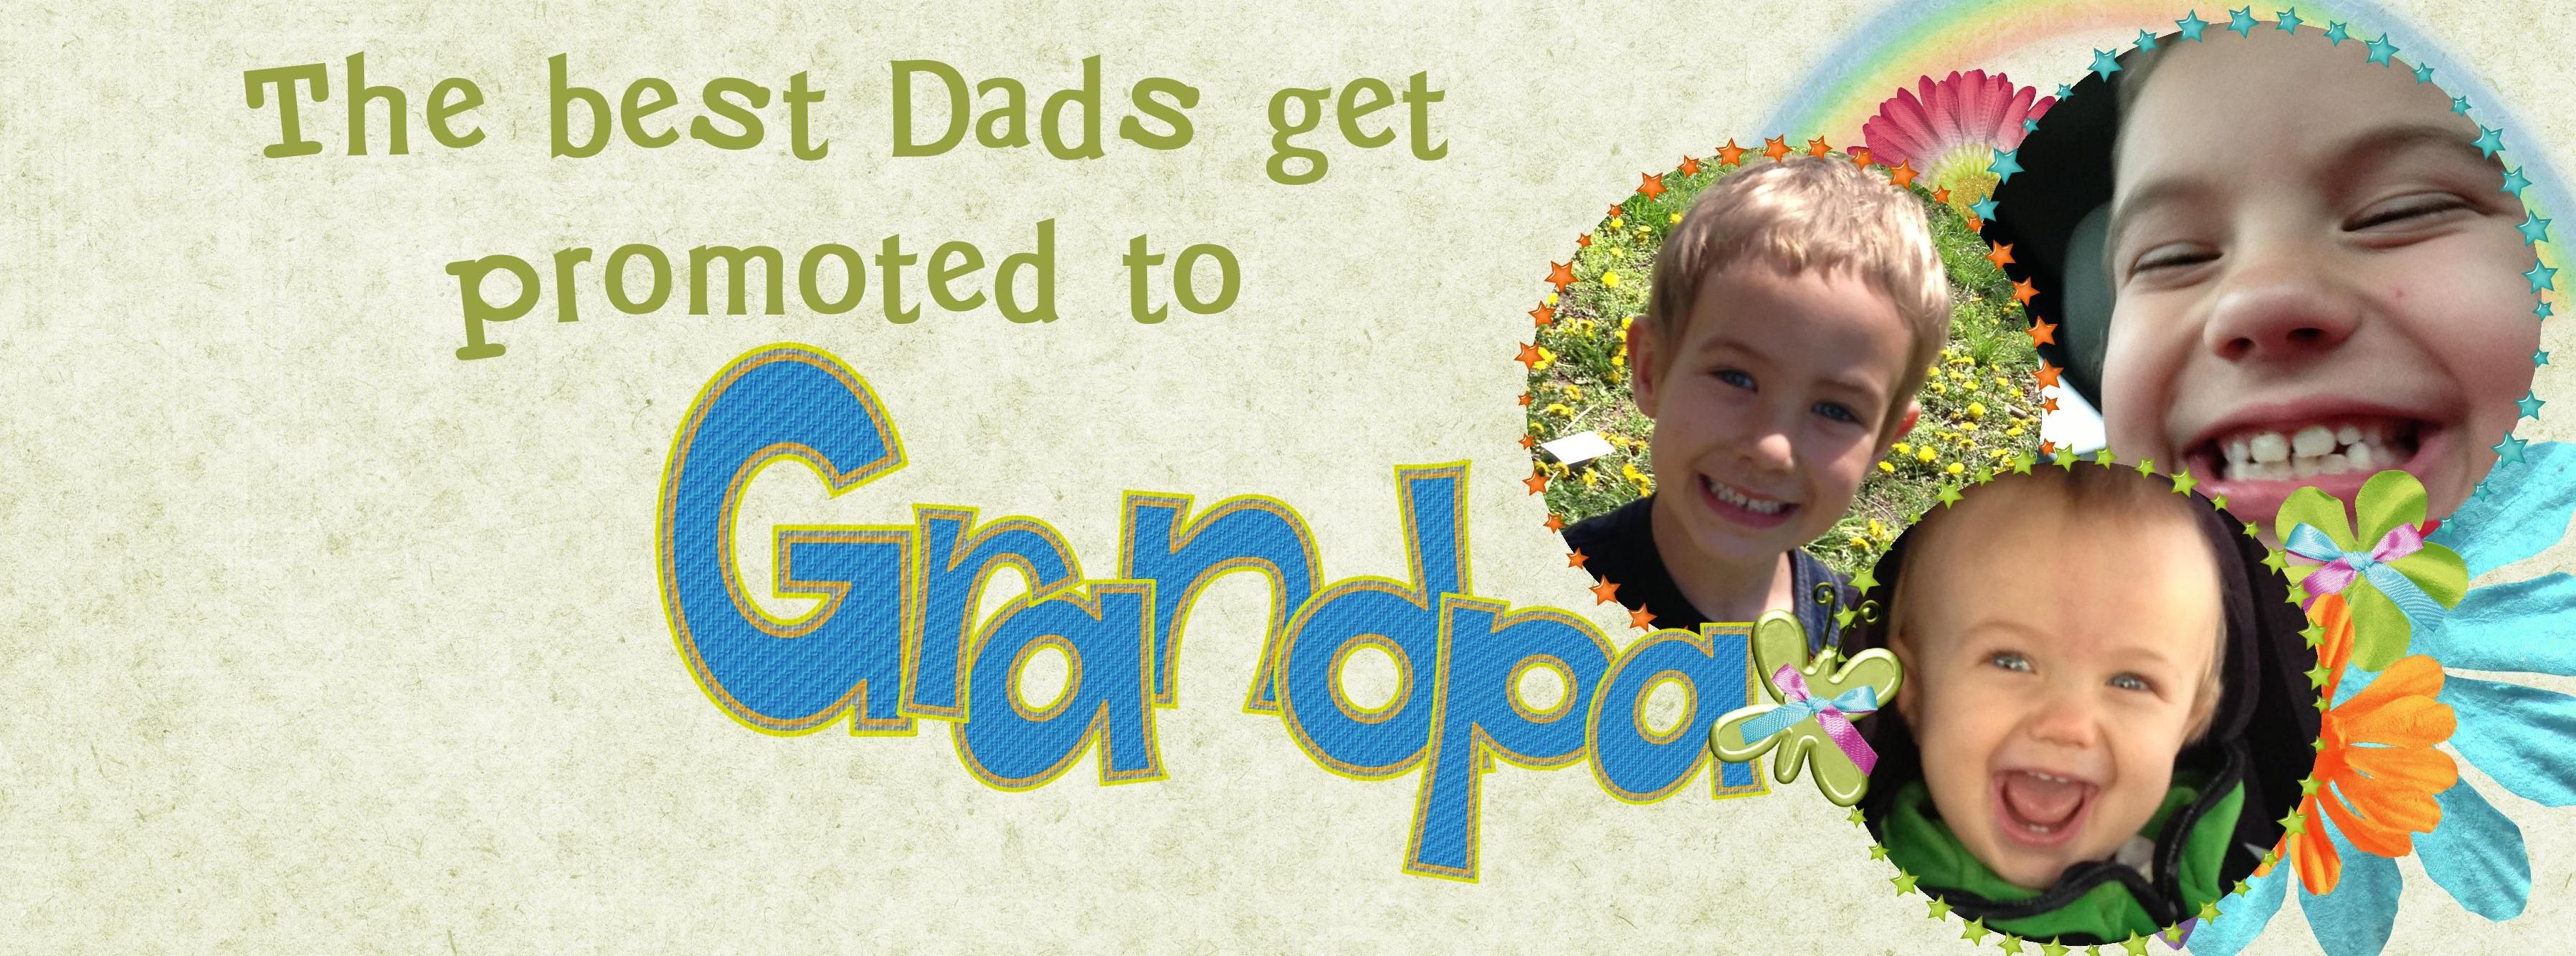 The best dads get promoted (Facebook Timeline Cover can be personalized for free)